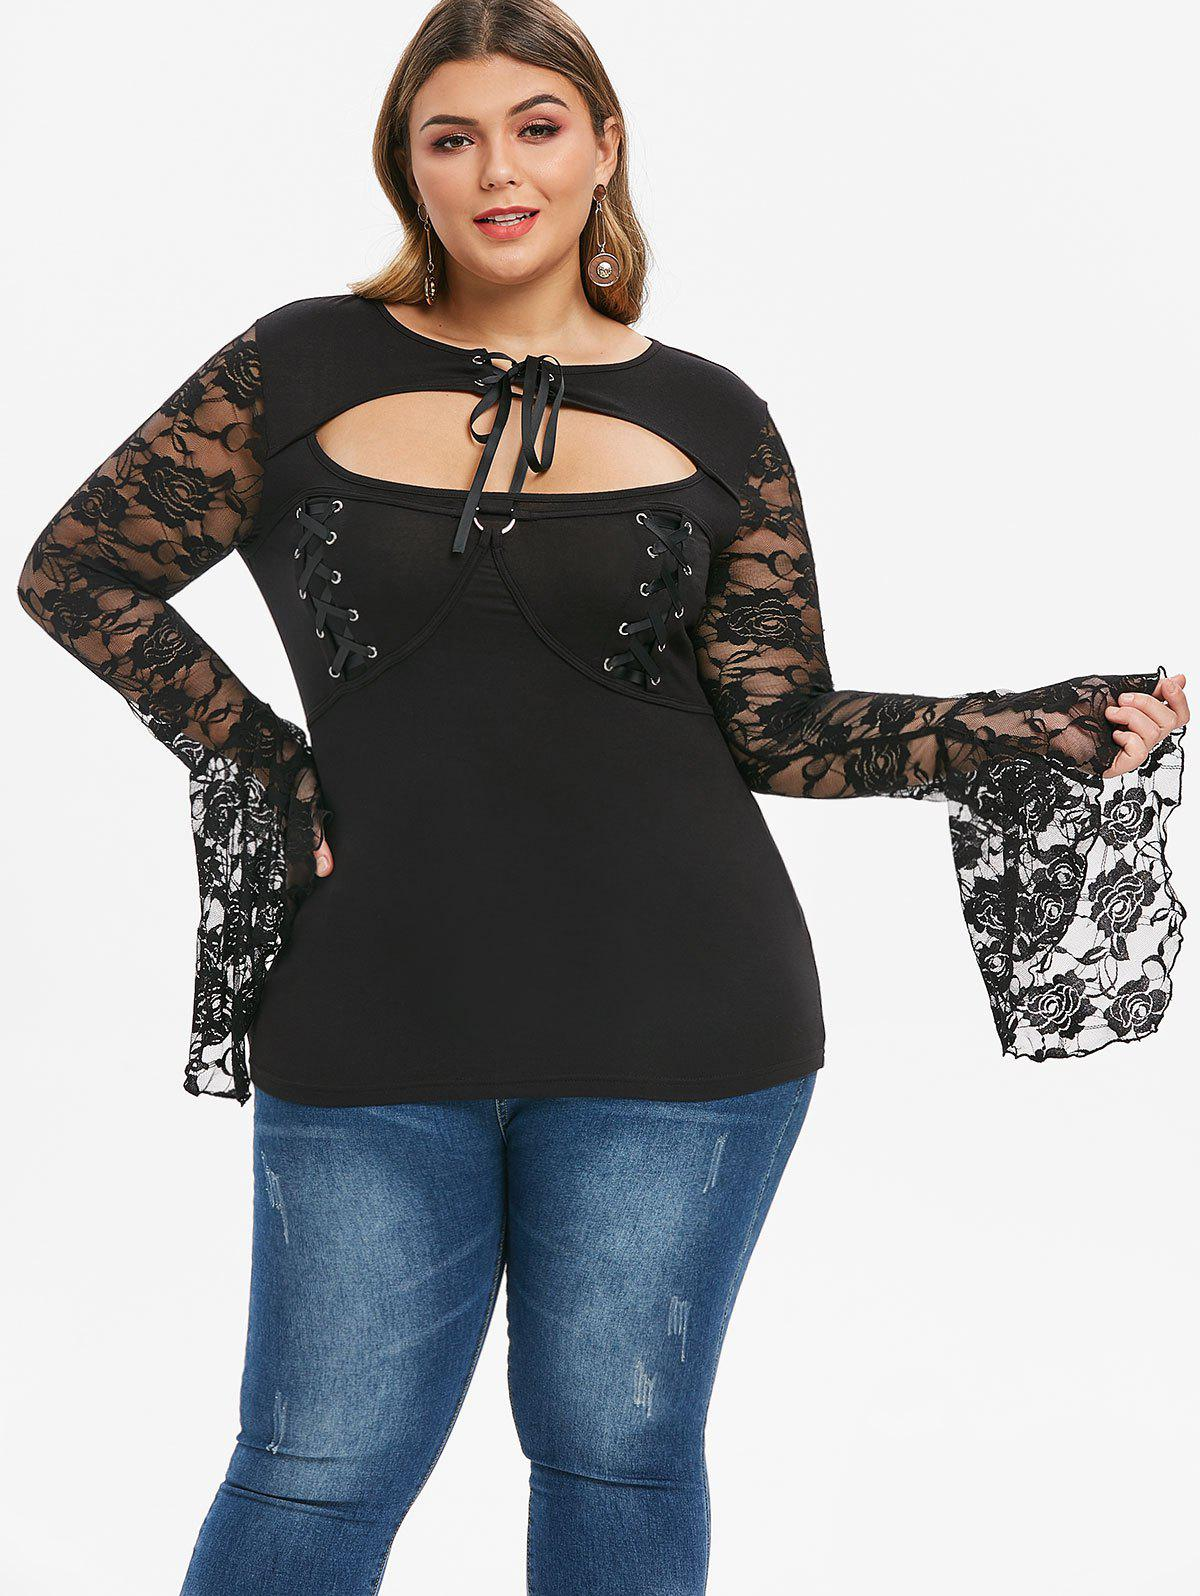 Plus Size Lace Up Cutout Gothic Bell Sleeve Tee